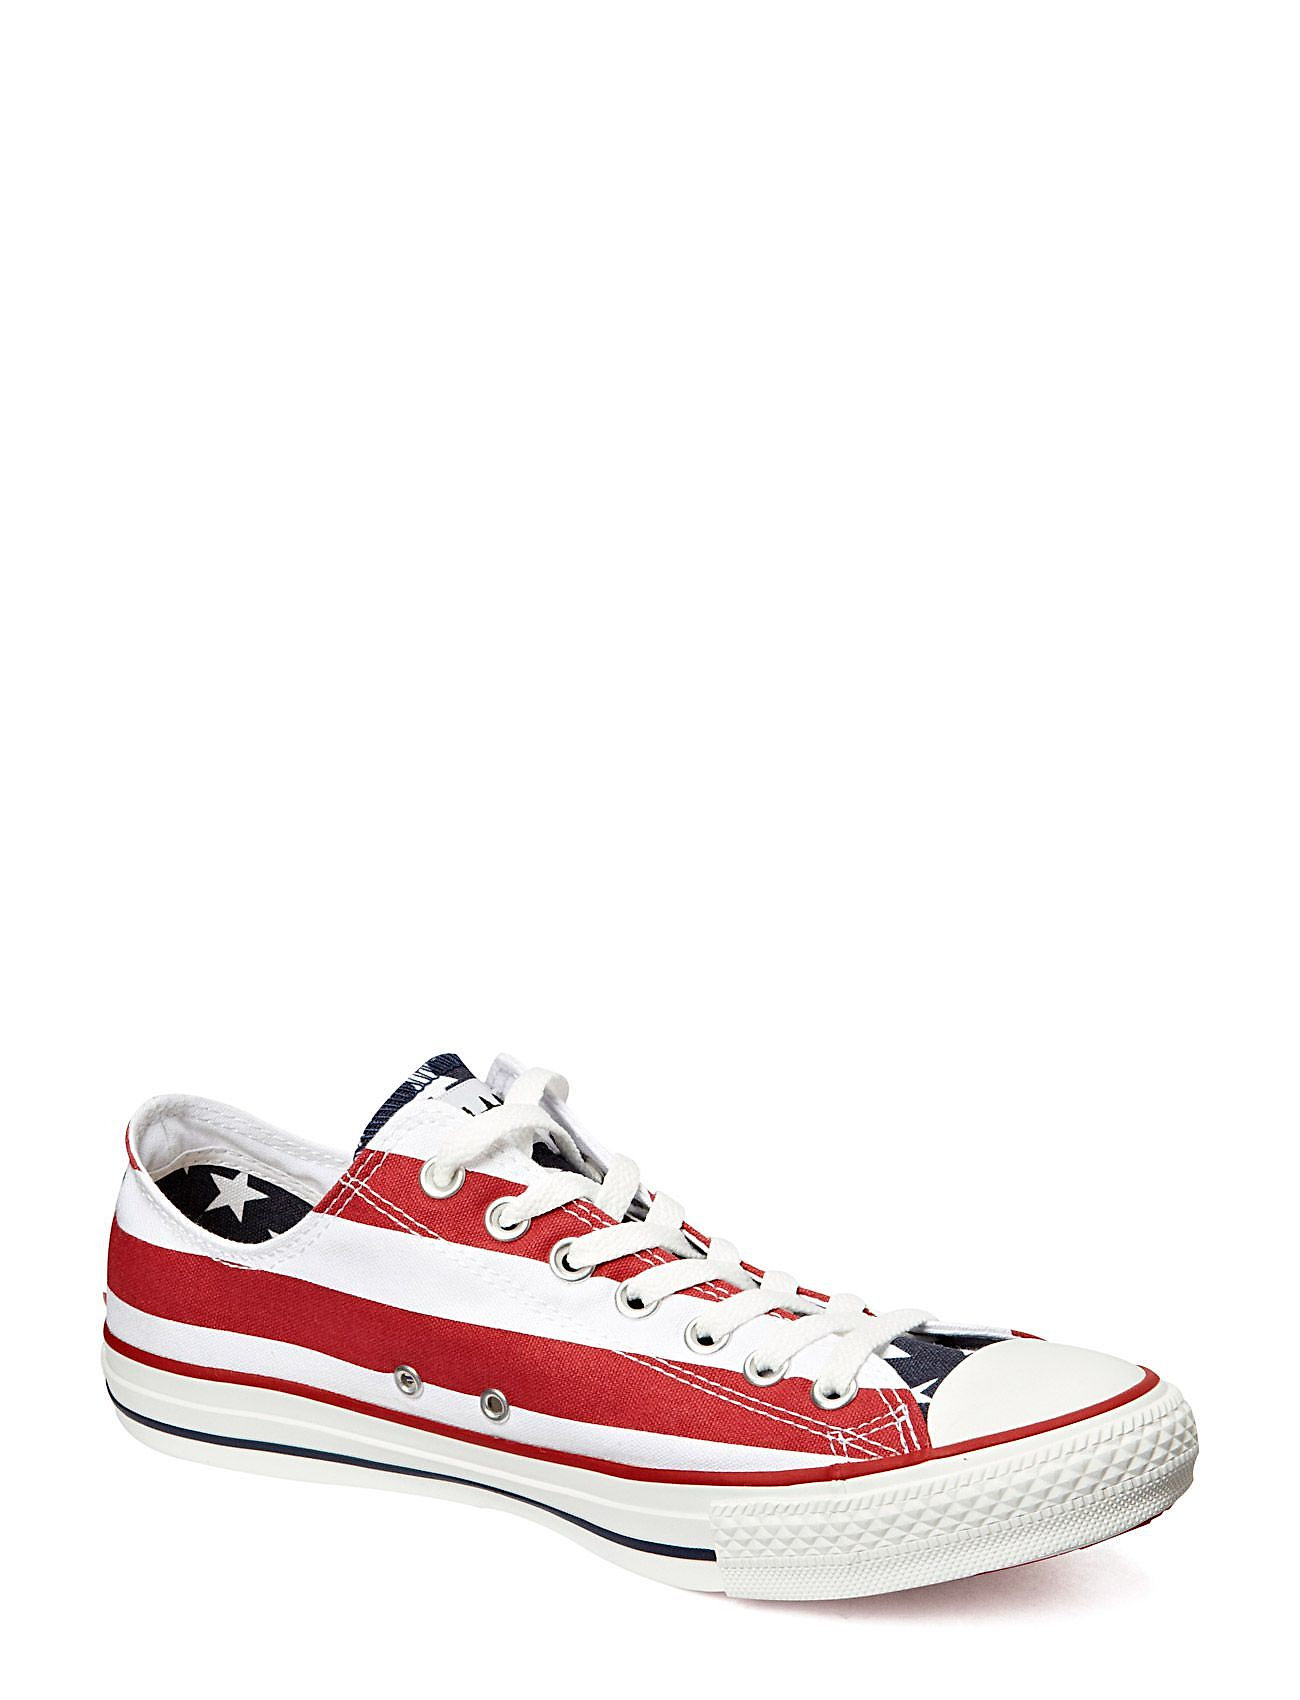 Converse ALL STAR STARS & BARS OX